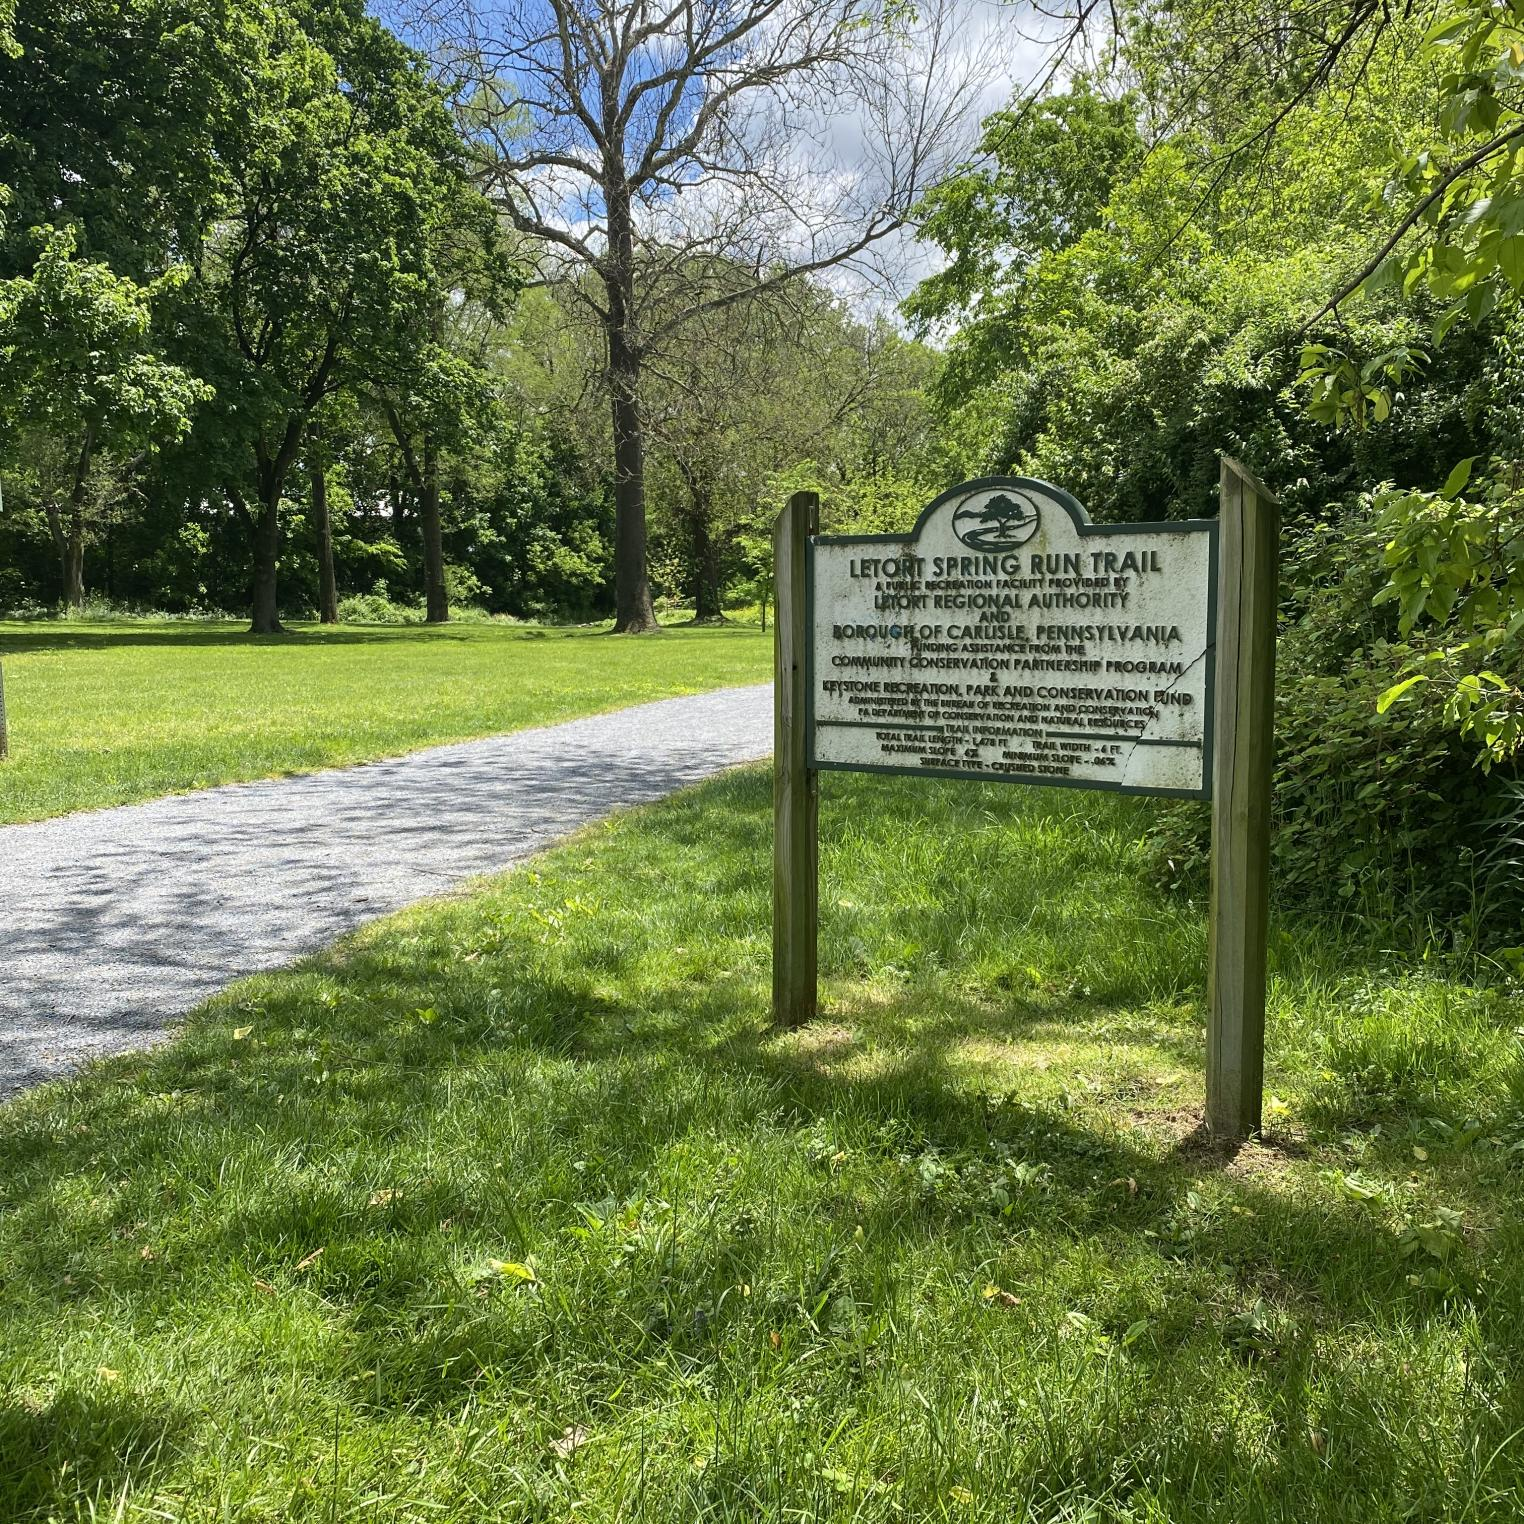 LeTort Spring Run & Nature Trail